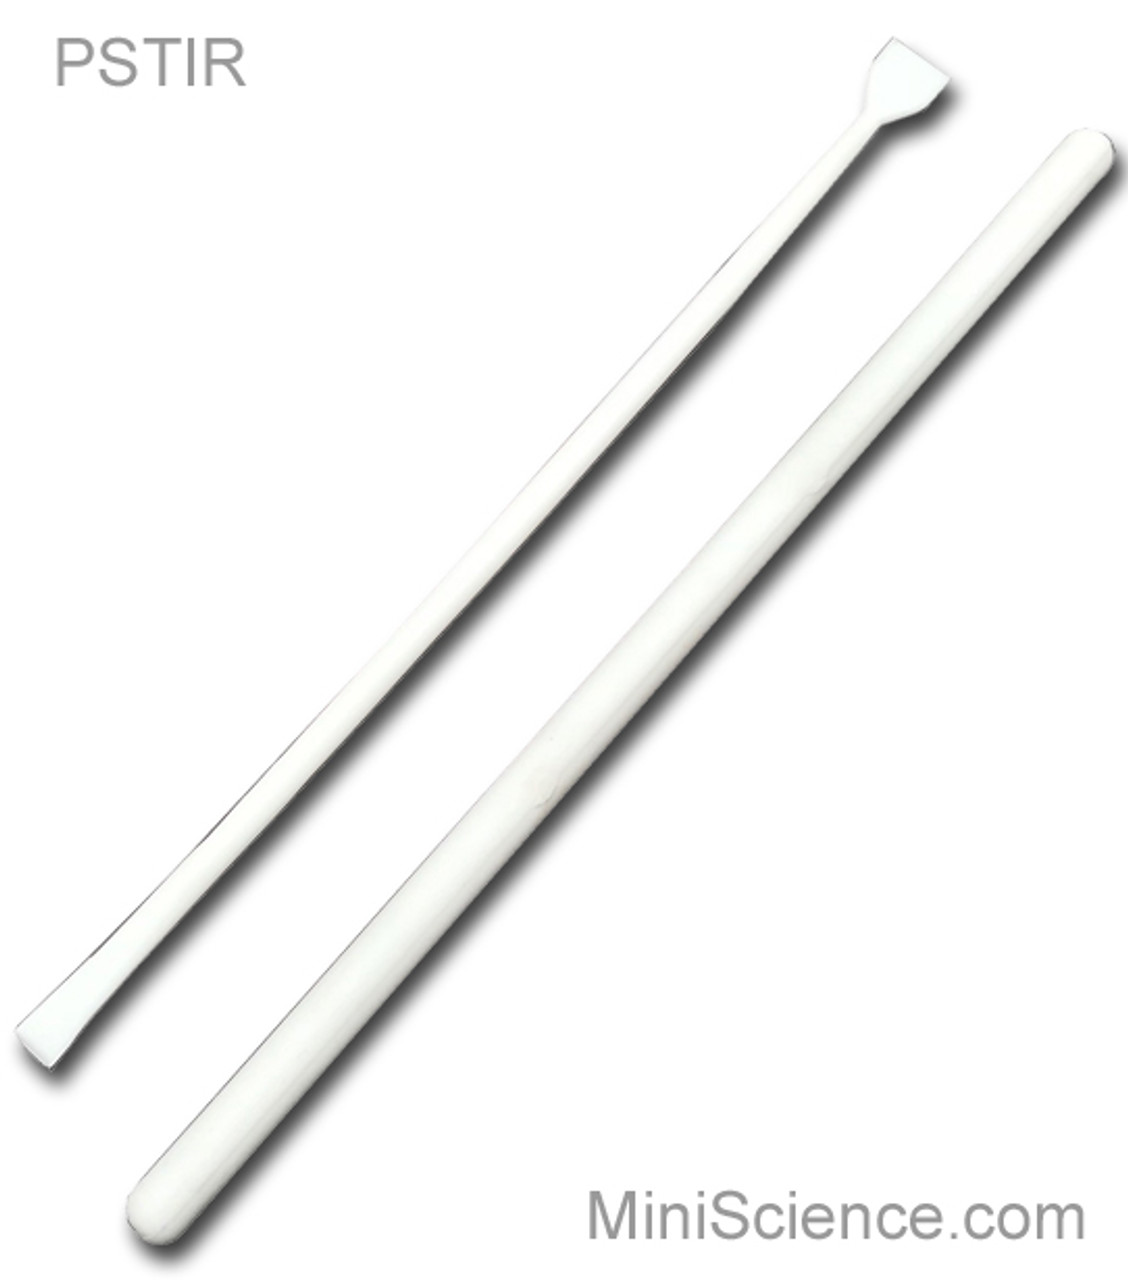 Plastic Stirrer, Stirring Rod, one pair